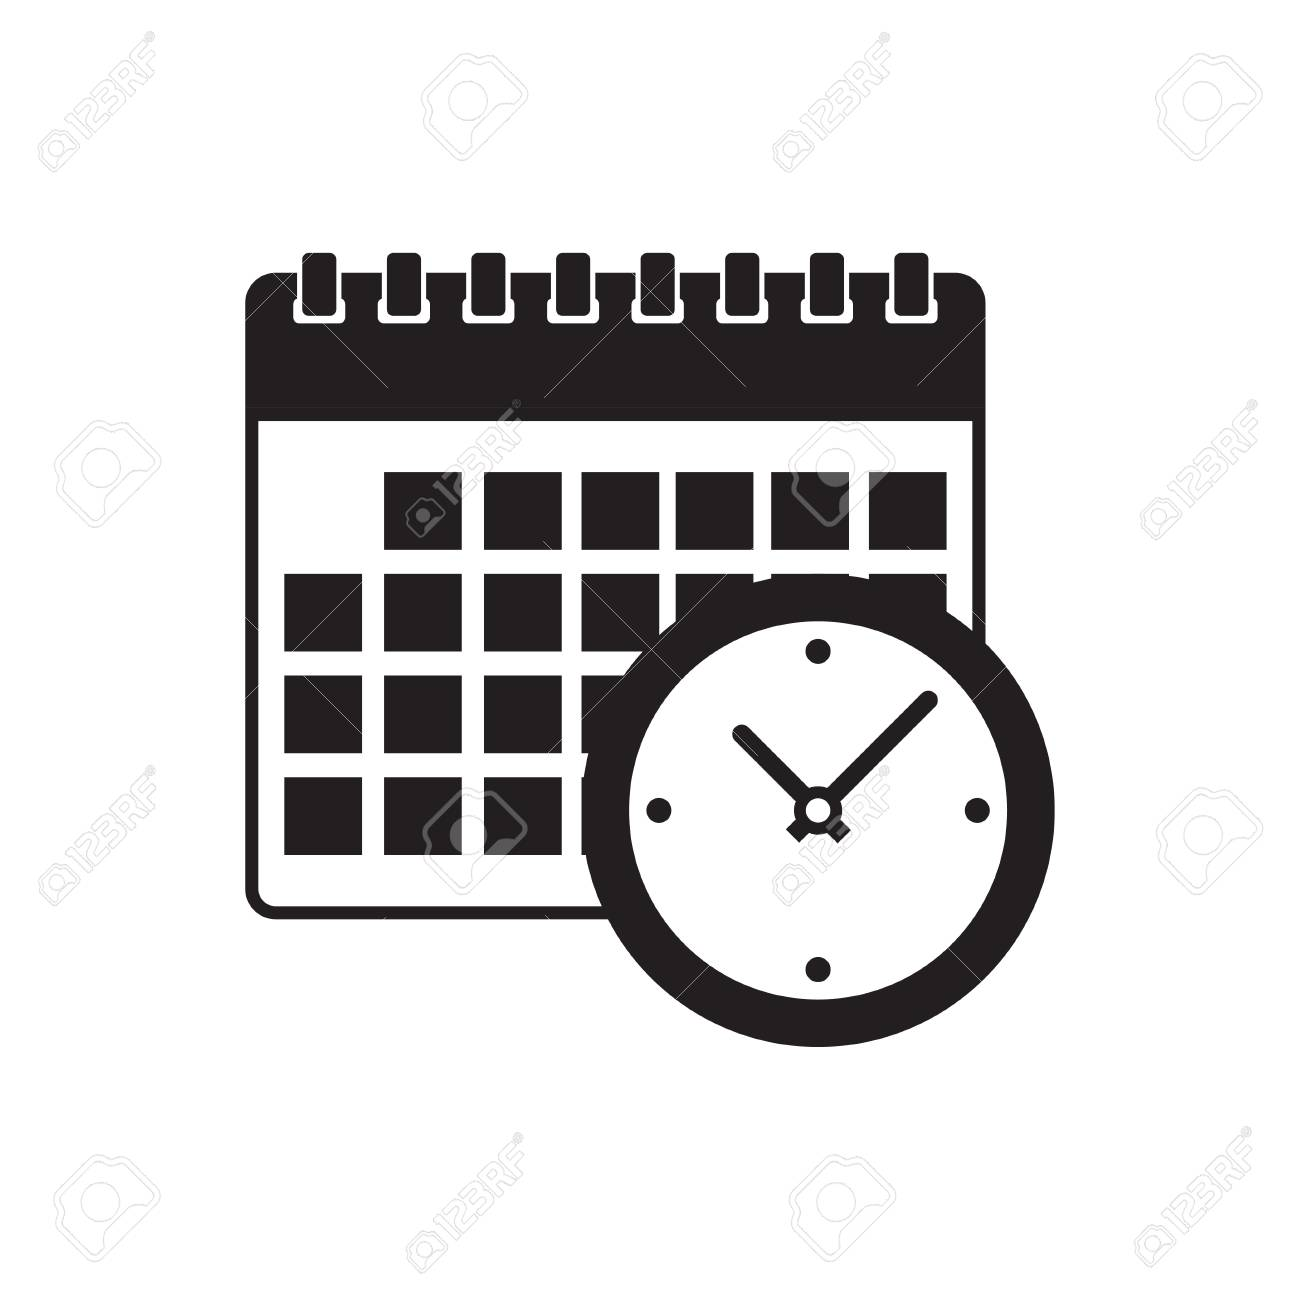 calendar and clock icon  Schedule, appointment, on white background,